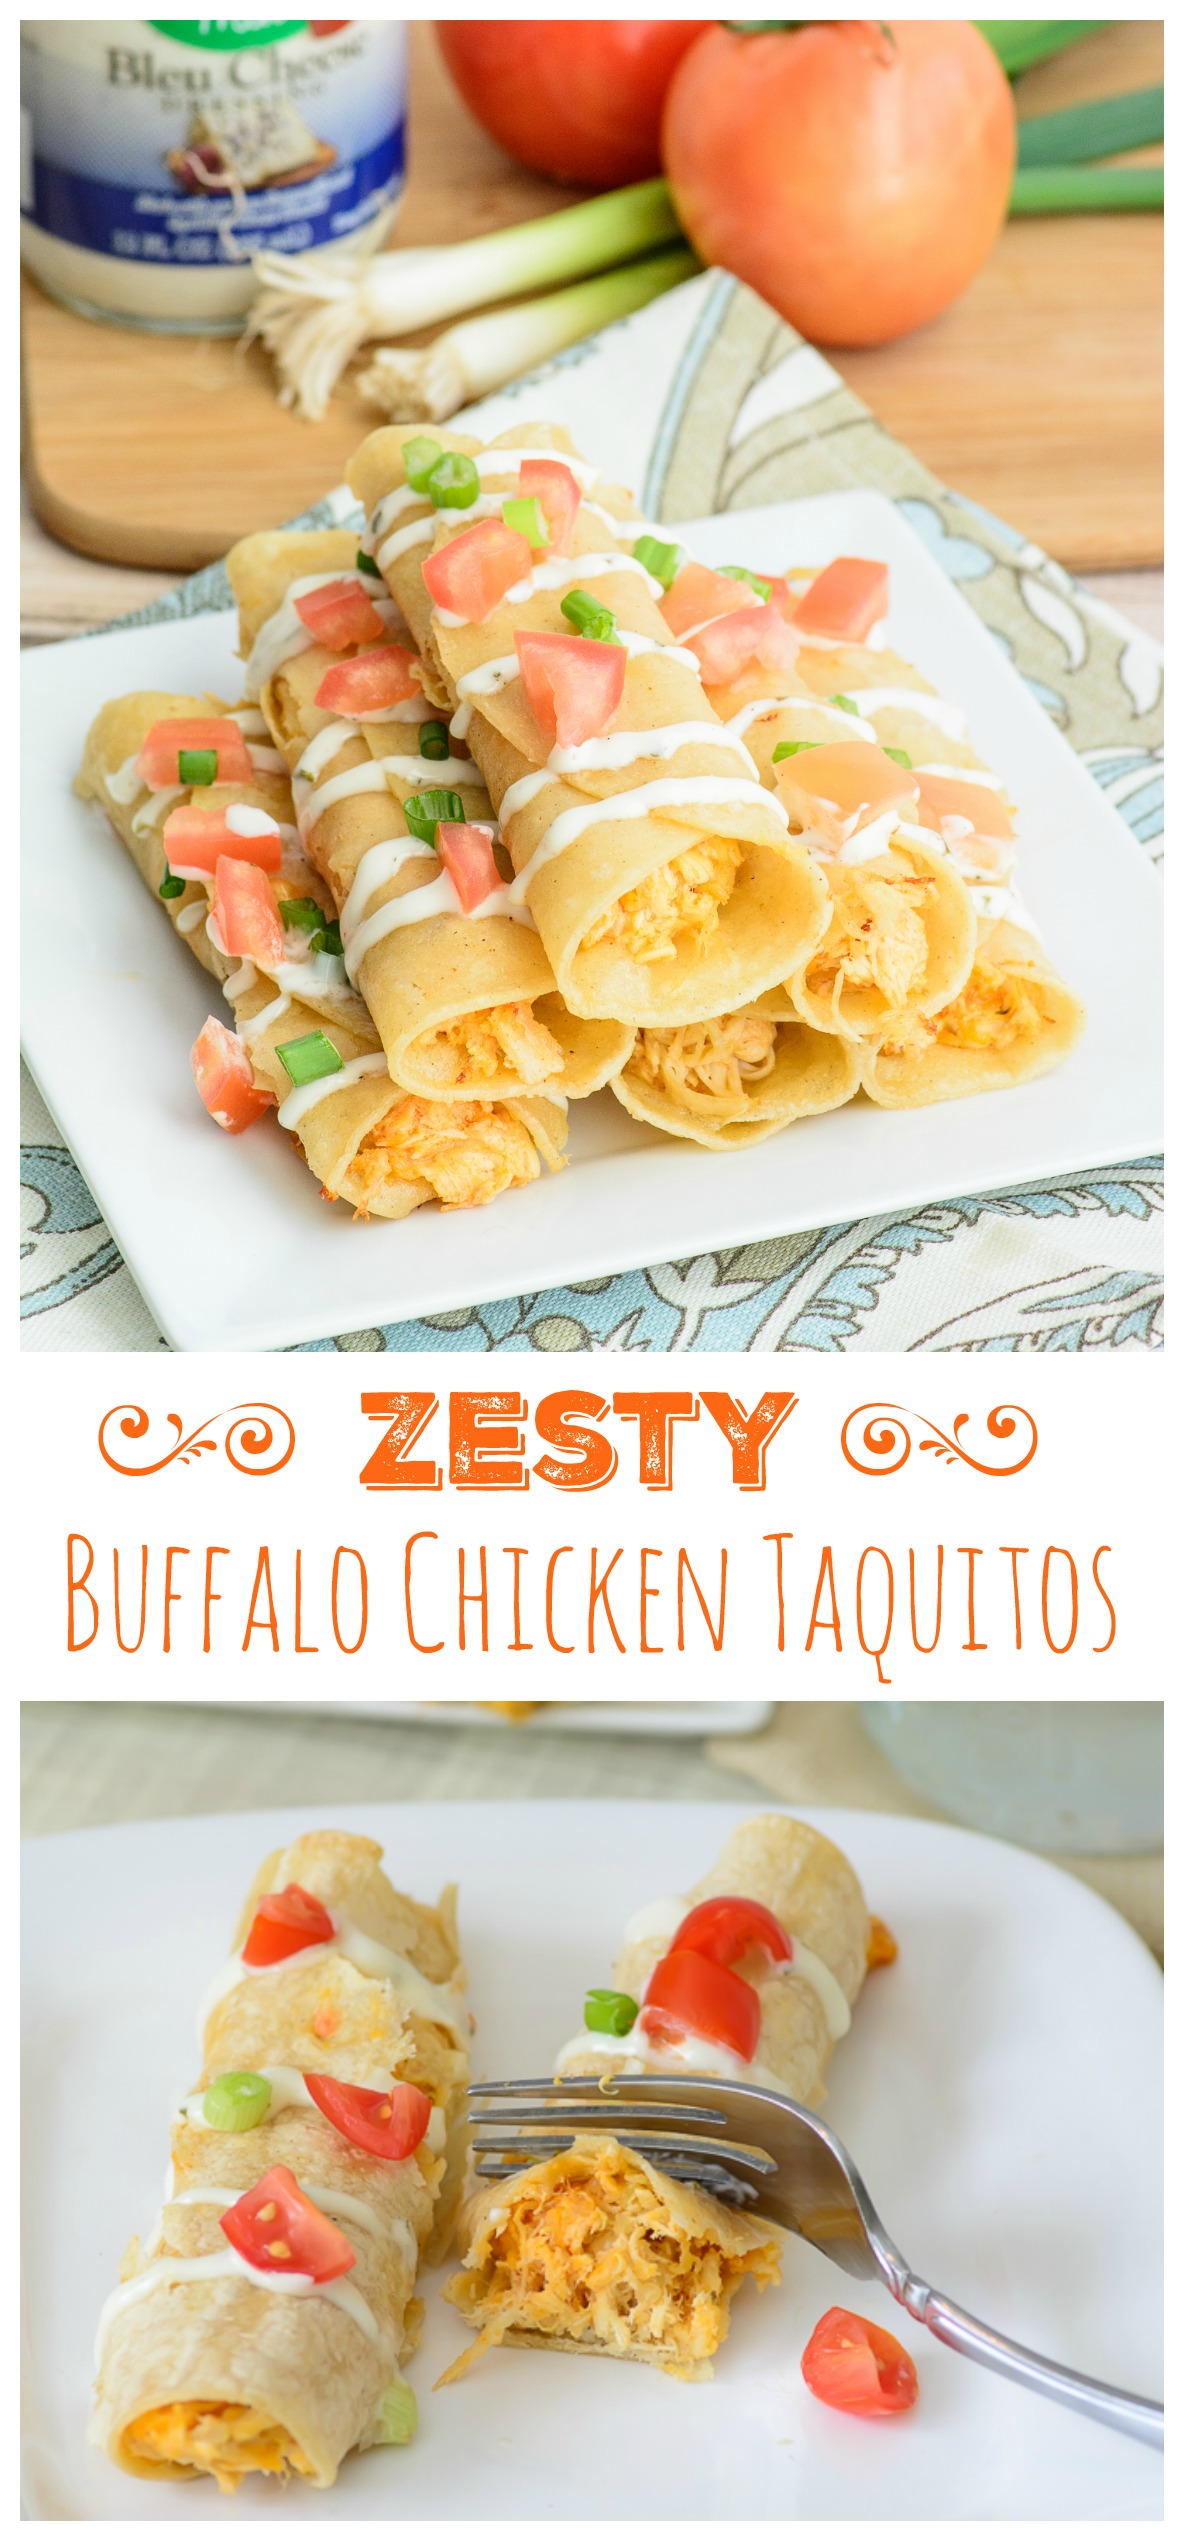 Kick up your appetizer game with these zesty Buffalo Chicken Taquitos. A perfect snack for the big game or just to satisfy a random buffalo chicken craving. Either way, you are going to love this buffalo chicken recipe!